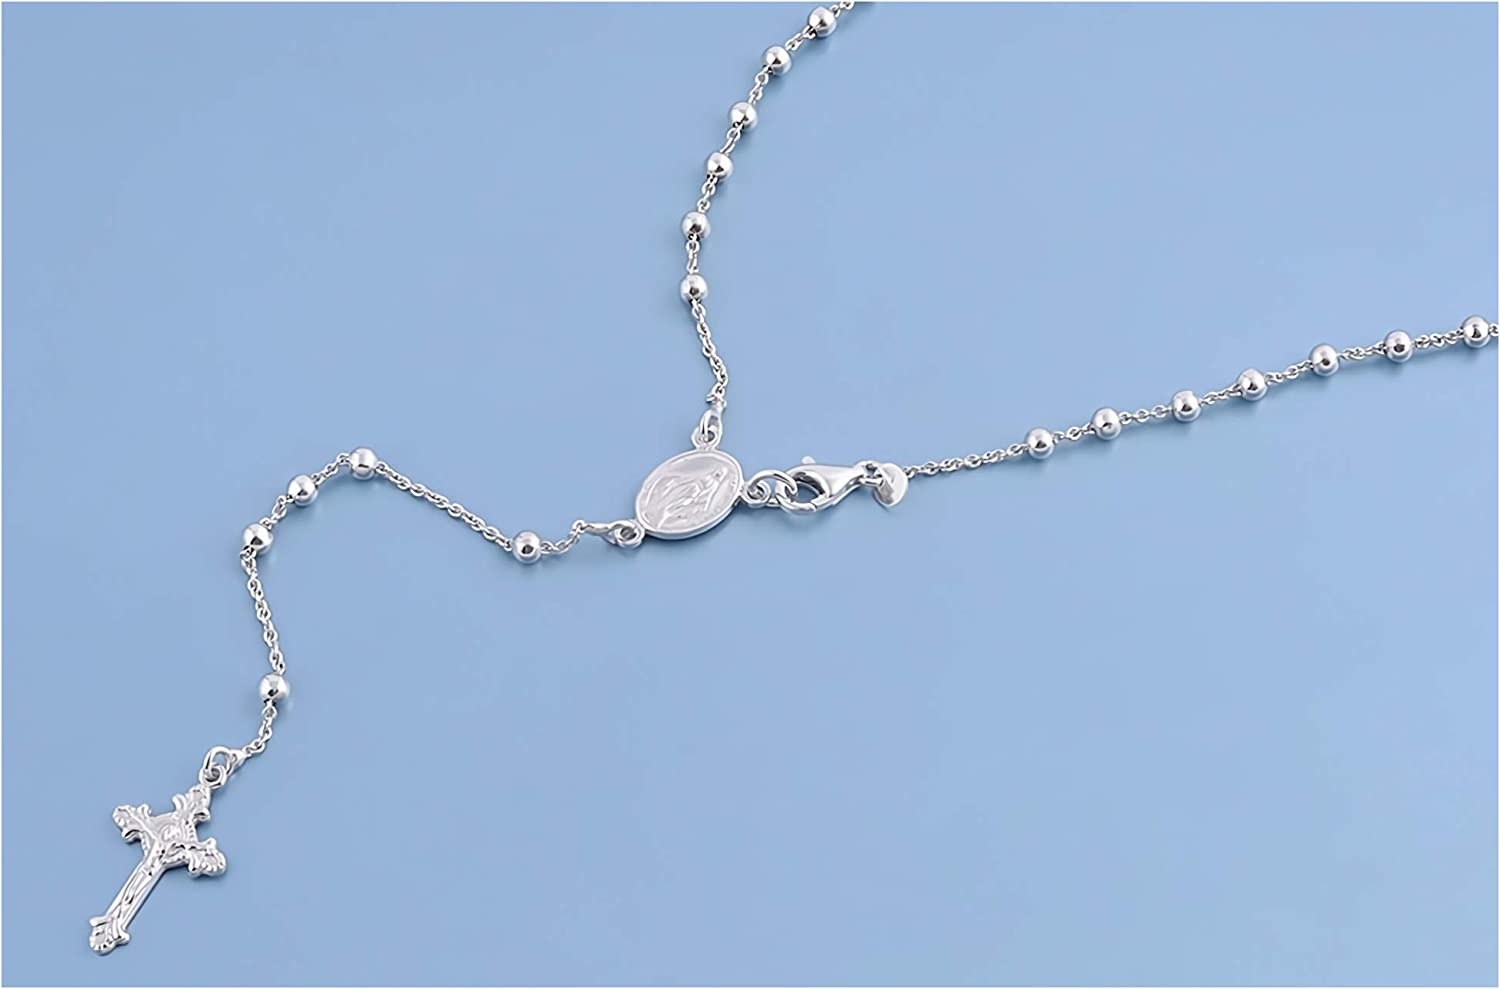 Glitzs Jewels 925 Sterling Silver Necklace Italian Chain, Curb 180 Jewelry Gift for Women and Girls